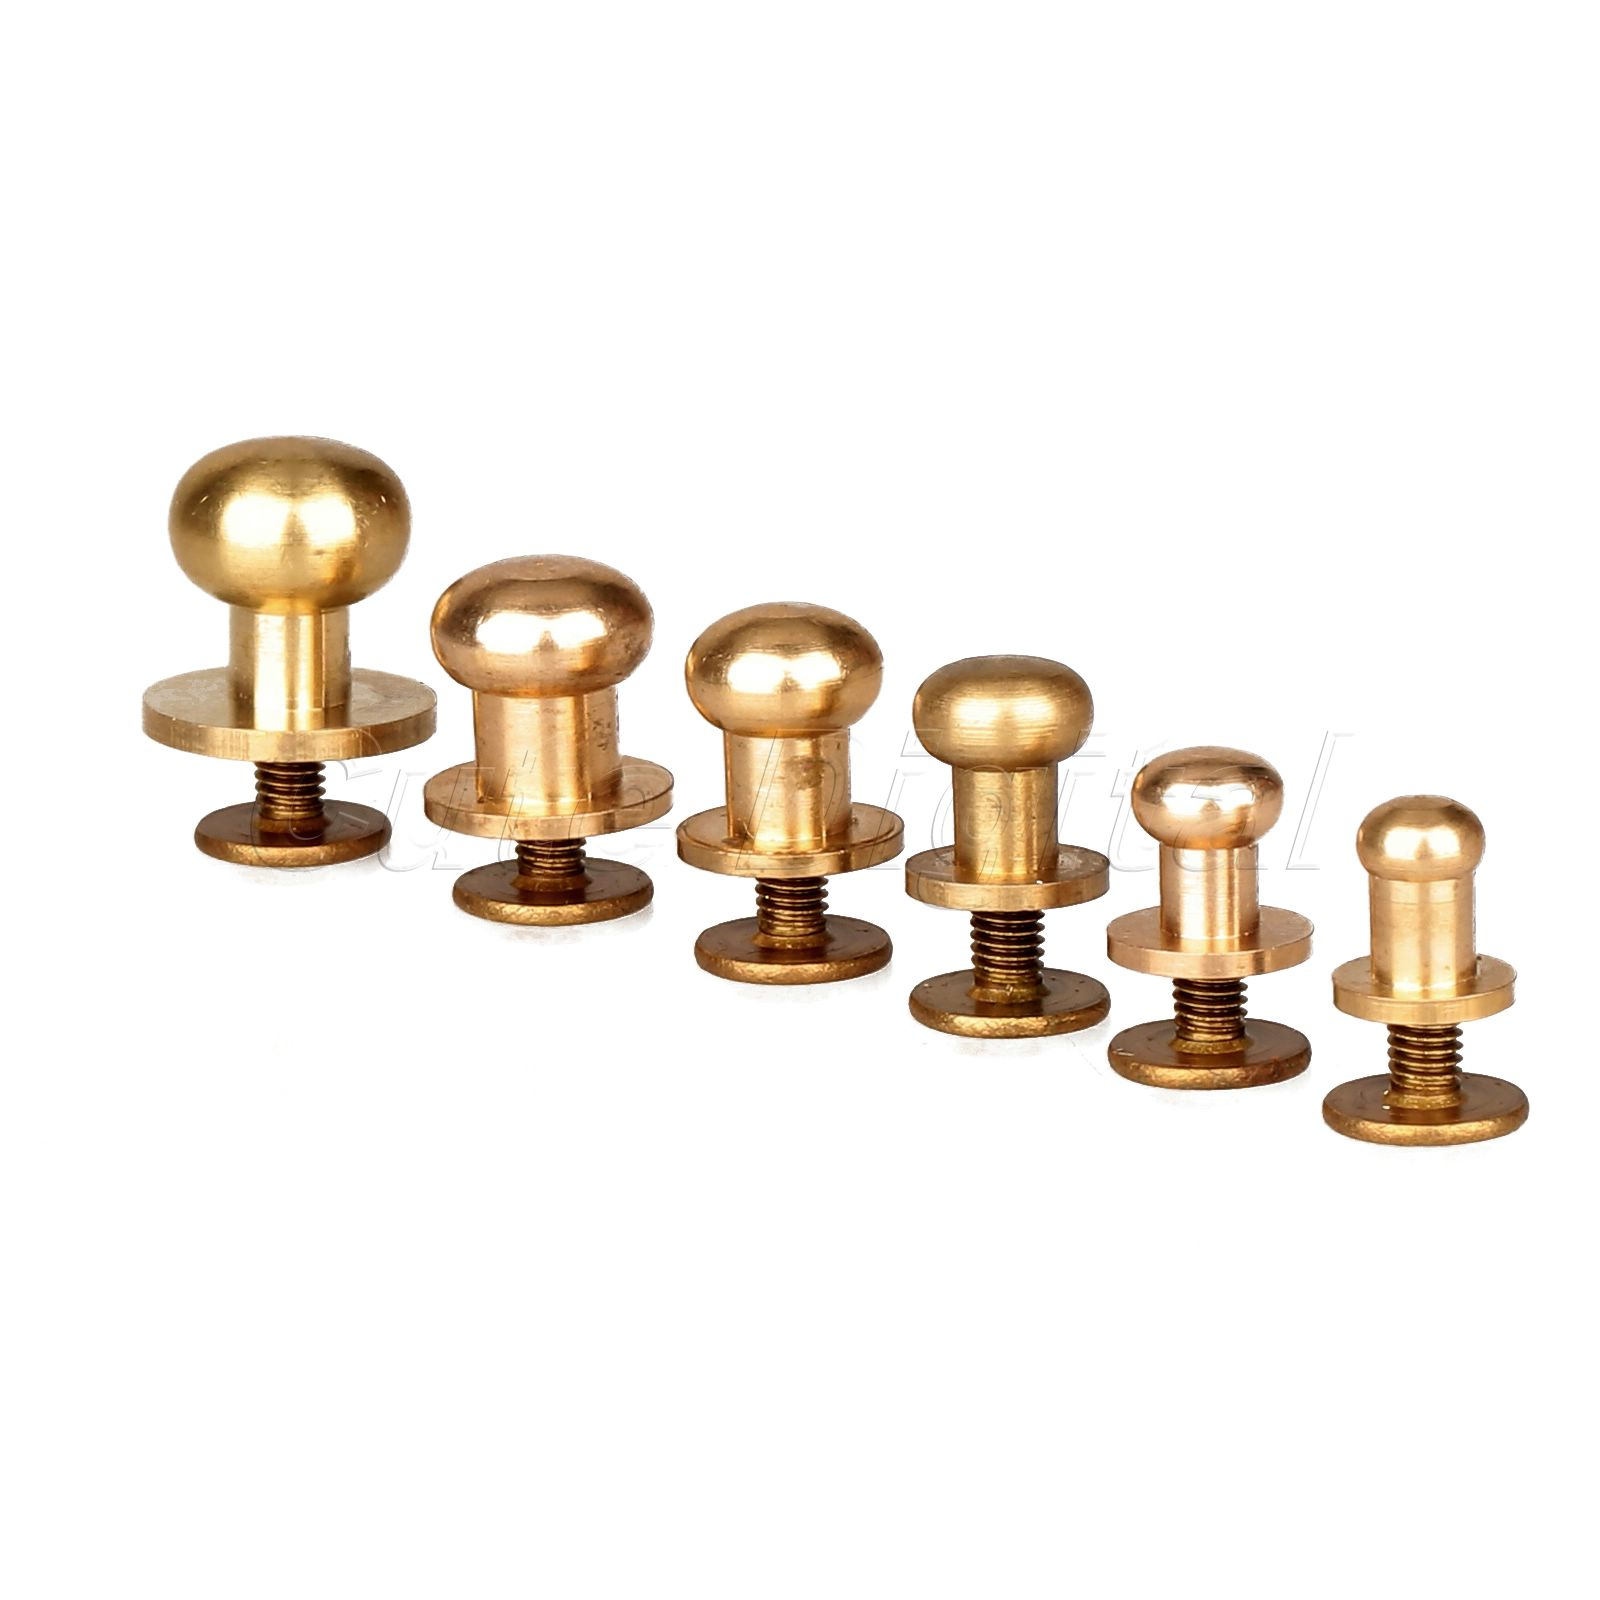 60pcs/Set 6 Size 5mm -10mm Antique Solid Brass Screw In Button Head Studs Sam Browne Screws Nail Rivets Leather Craft Tool 20pcs m3 6 m3 x 6mm aluminum anodized hex socket button head screw